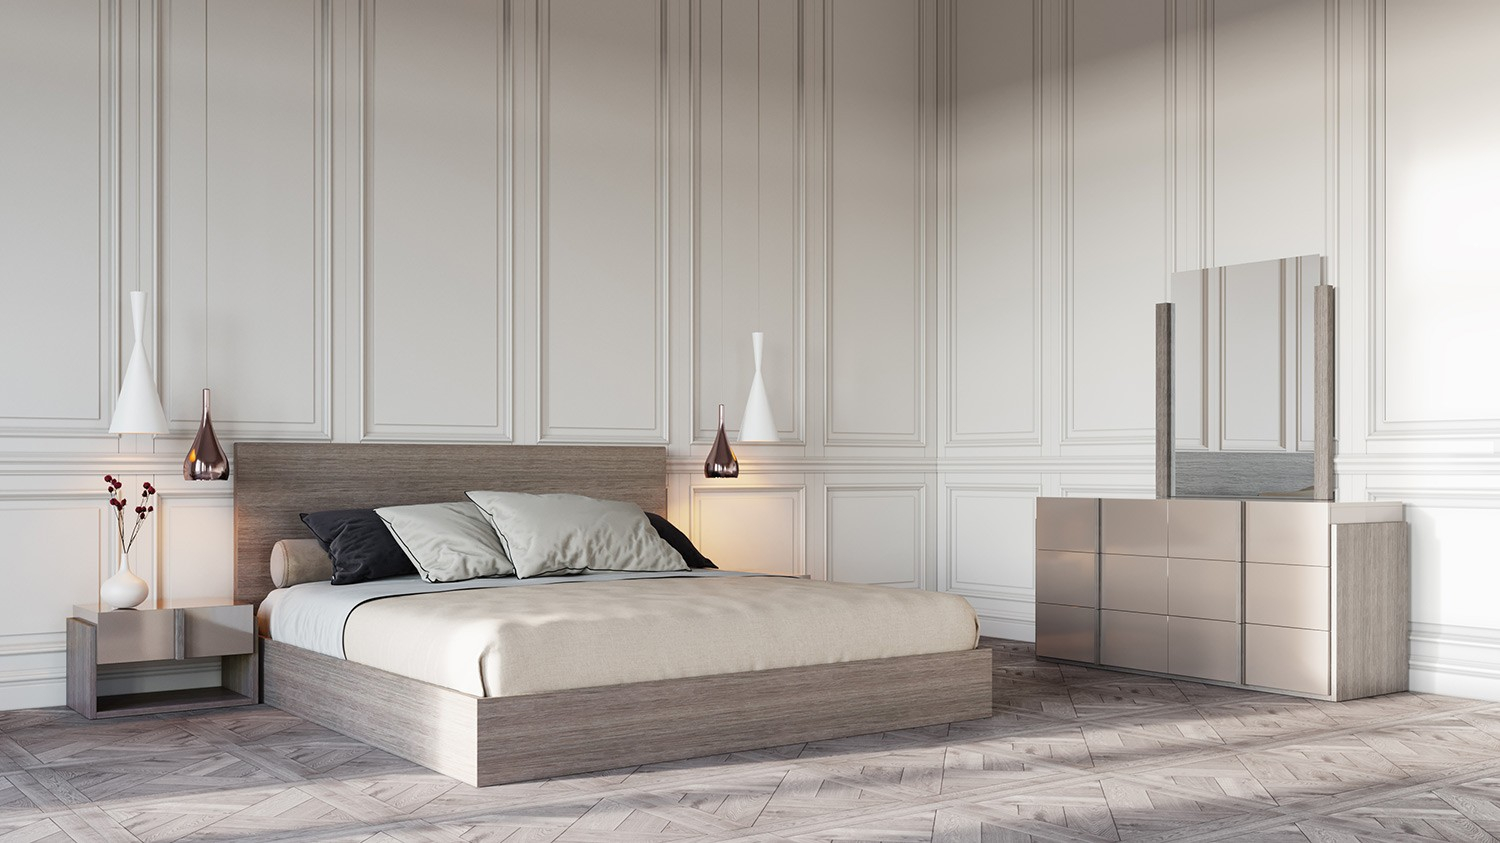 Nova Domus Marcela Italian Modern Bedroom Set with regard to Italian Modern Bedroom Sets